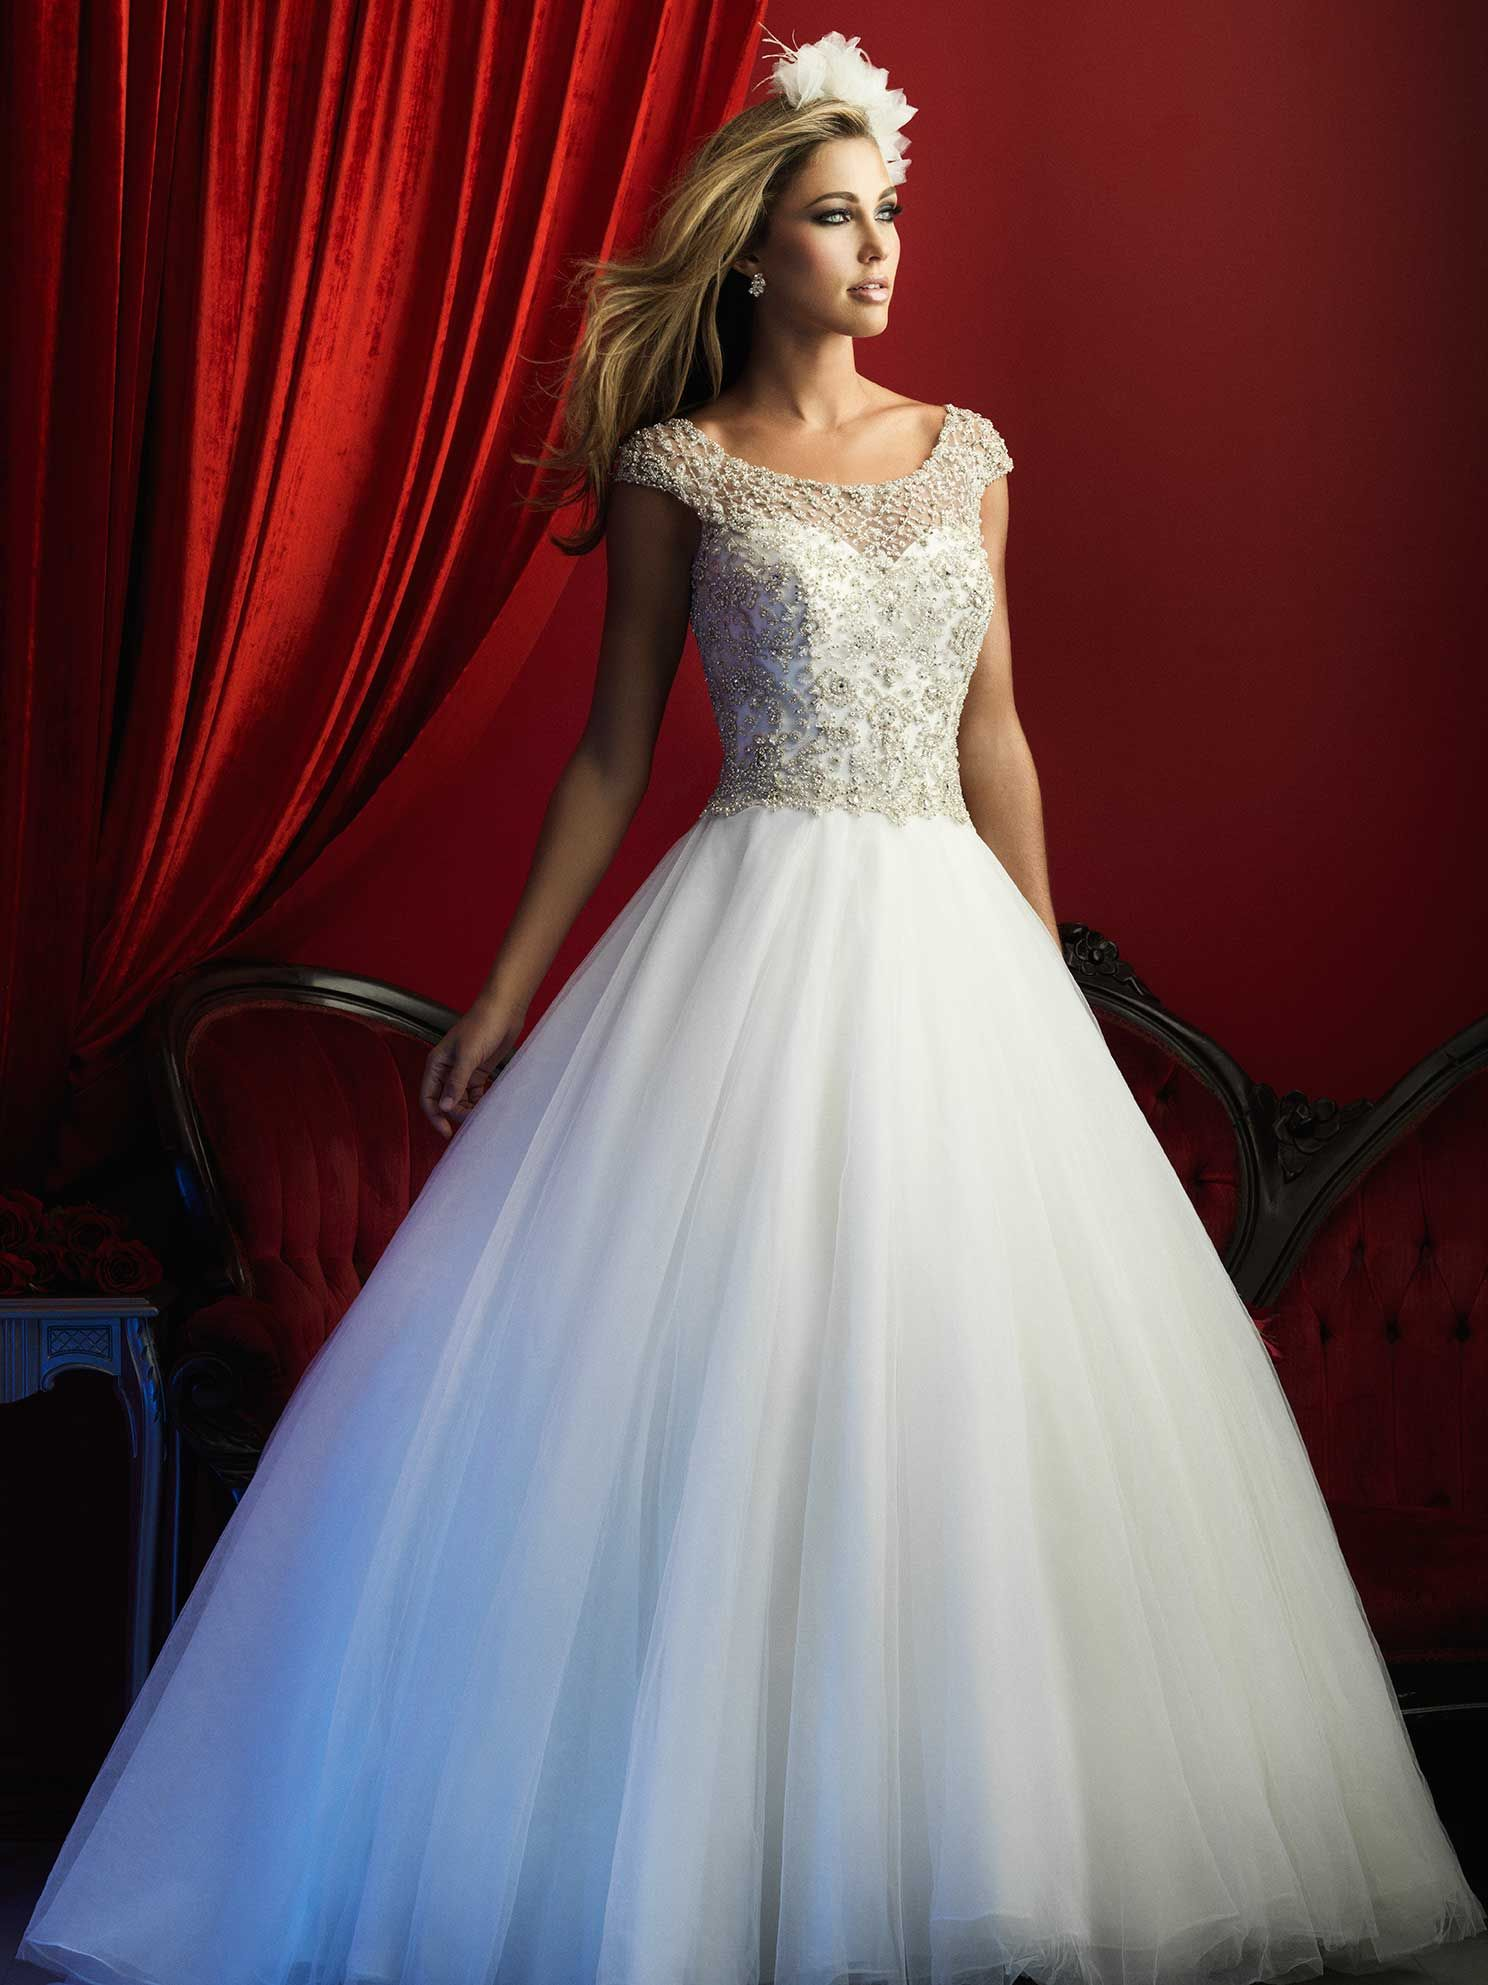 Were soo in love with this magical ballgown by allure bridals wedding dresses bridesmaid dresses prom dresses and bridal dresses allure couture wedding dresses style allure couture wedding dresses ombrellifo Choice Image